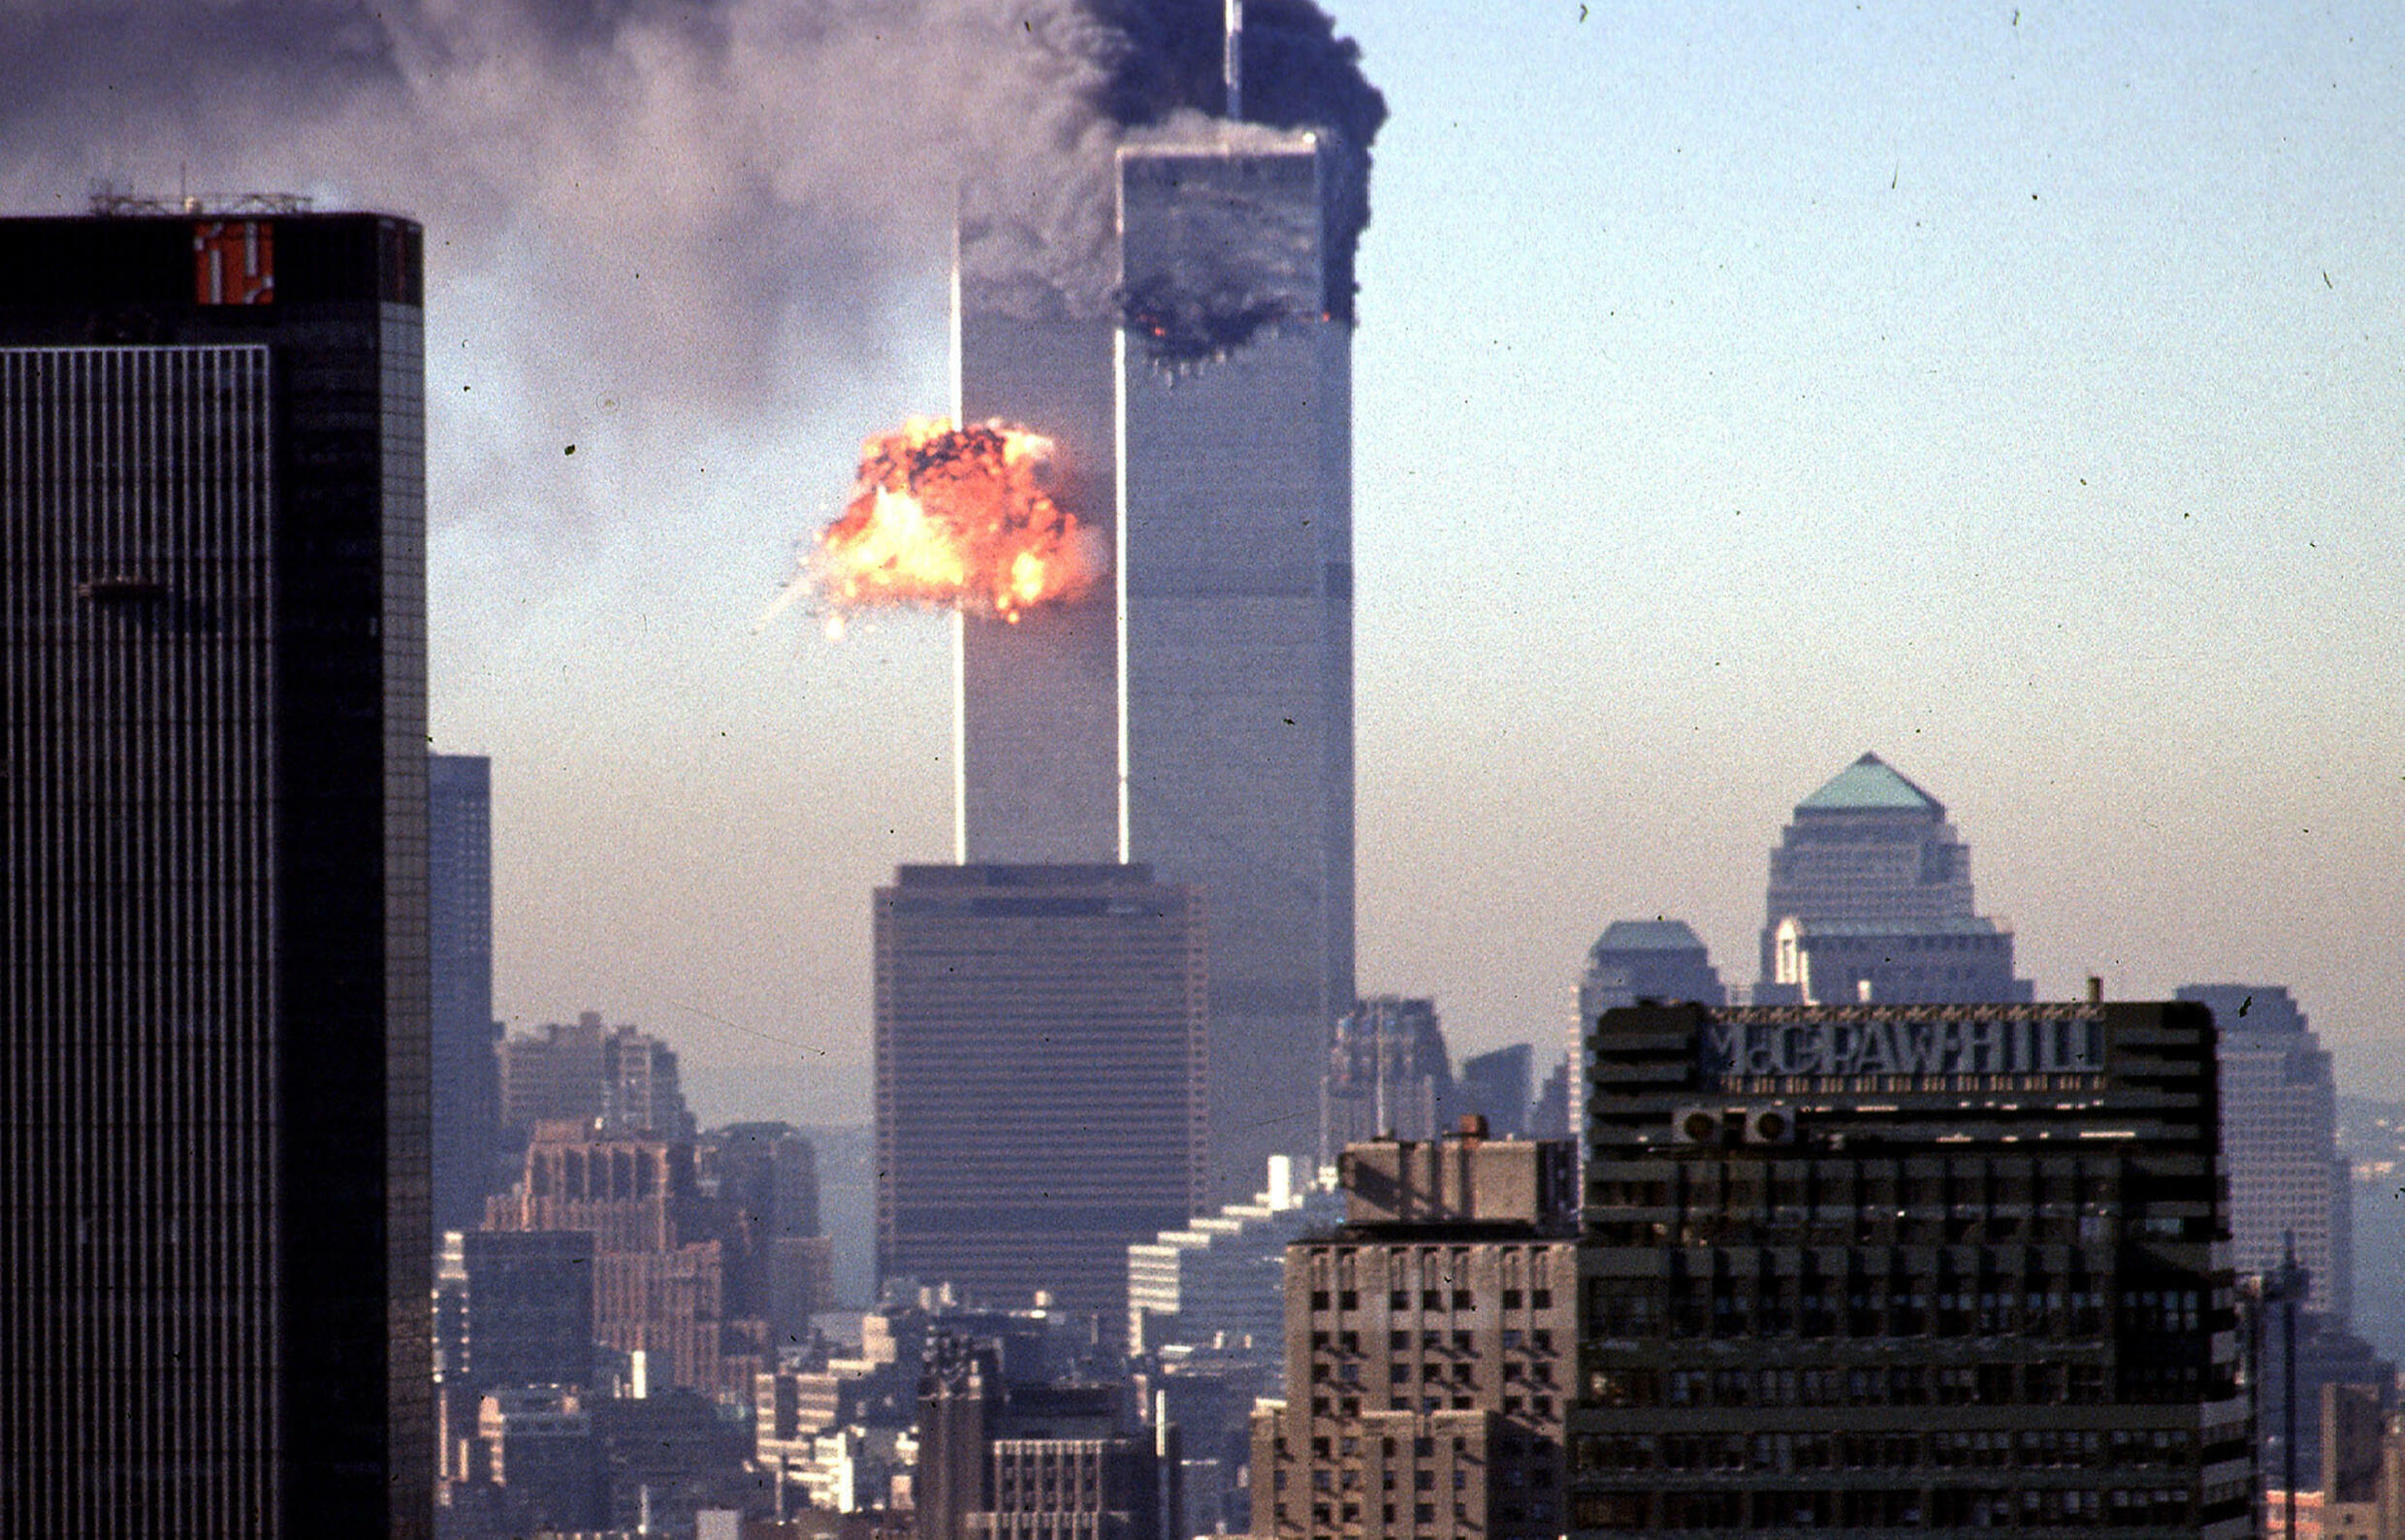 Afghans did not immediately realise the significance of 9/11 until it became clear the attacks were carried out by Al-Qaeda militants sheltered by the Taliban